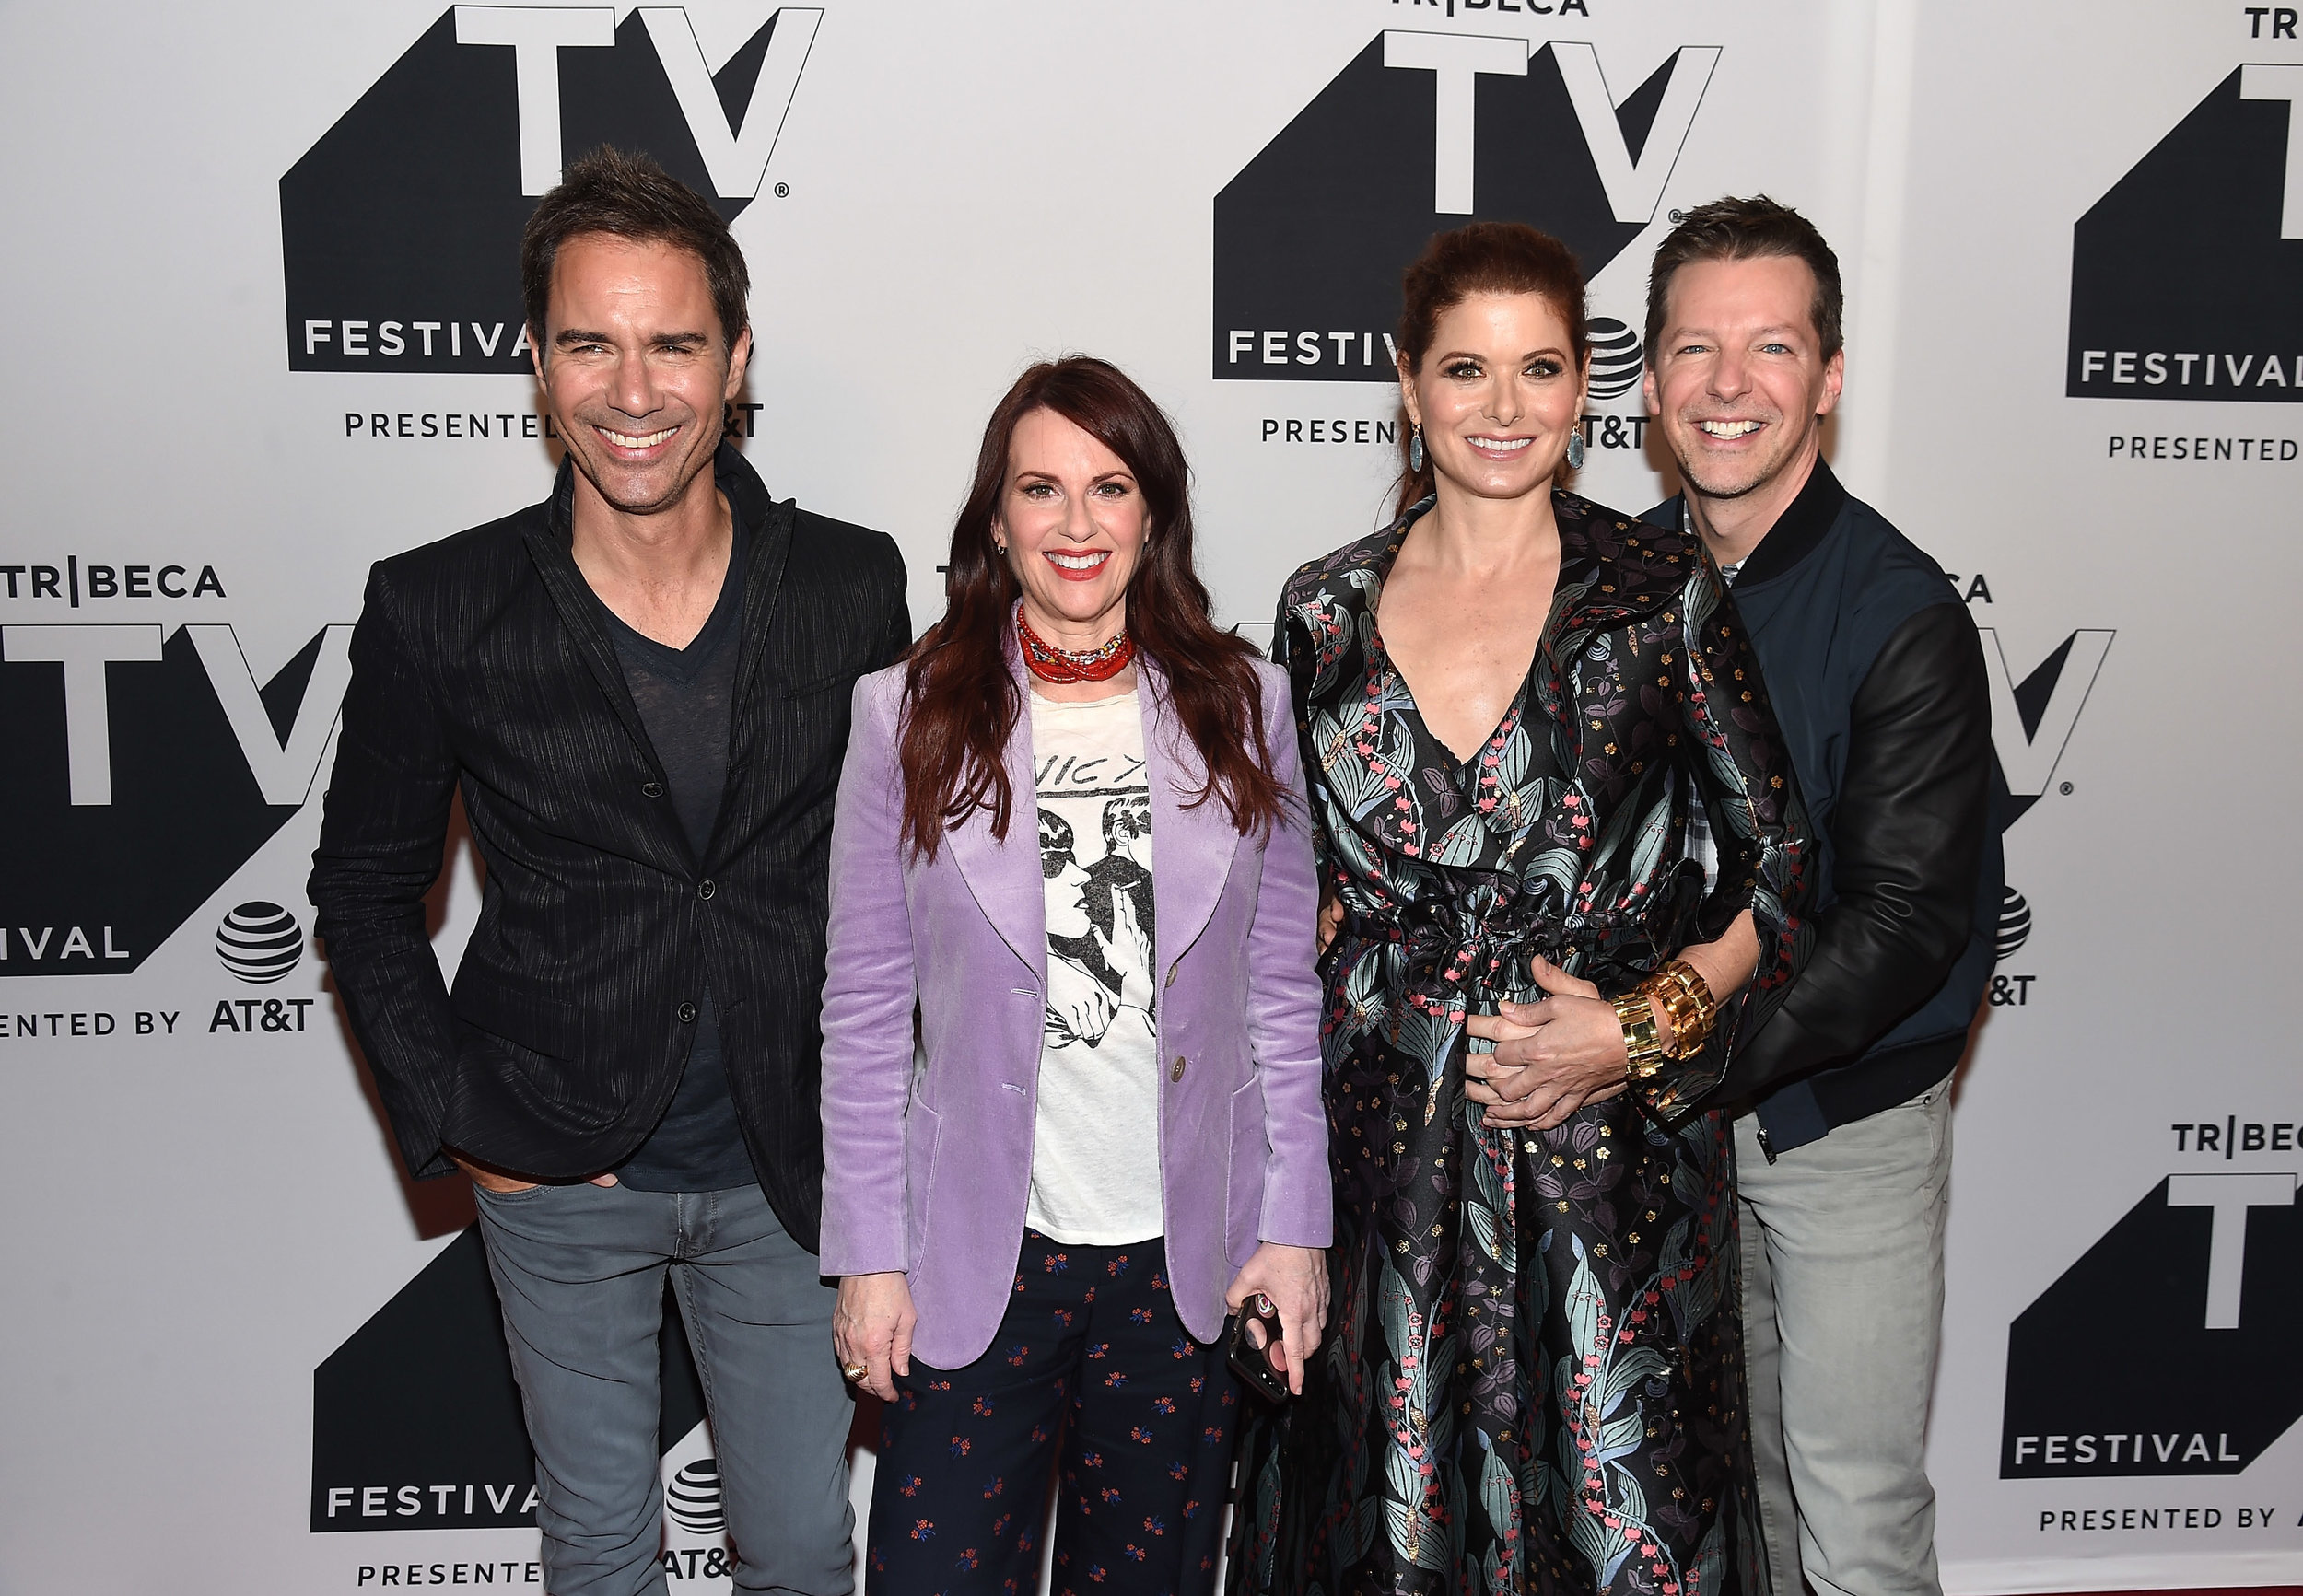 Eric McCormack, Megan Mullally, Debra Messing and Sean Hayes attend the Tribeca TV Festival exclusive celebration for Will & Grace at Cinepolis Chelsea on September 23, 2017 in New York City. (Photo by Nicholas H.jpg